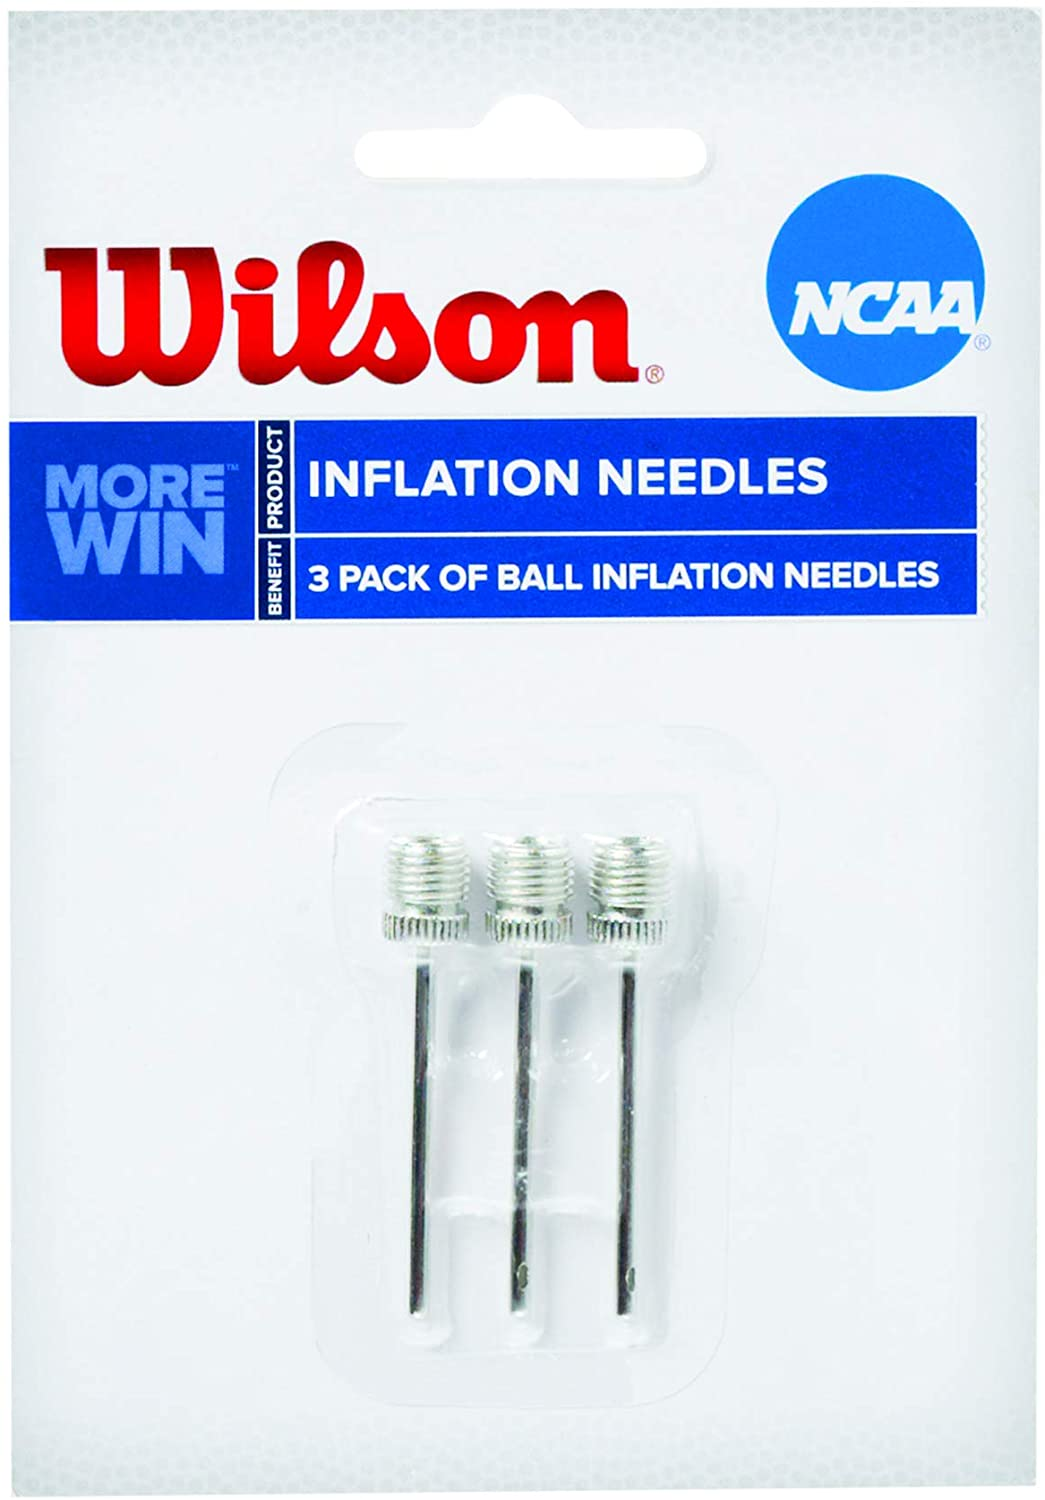 Wilson NCAA Basketball Inflation Needles